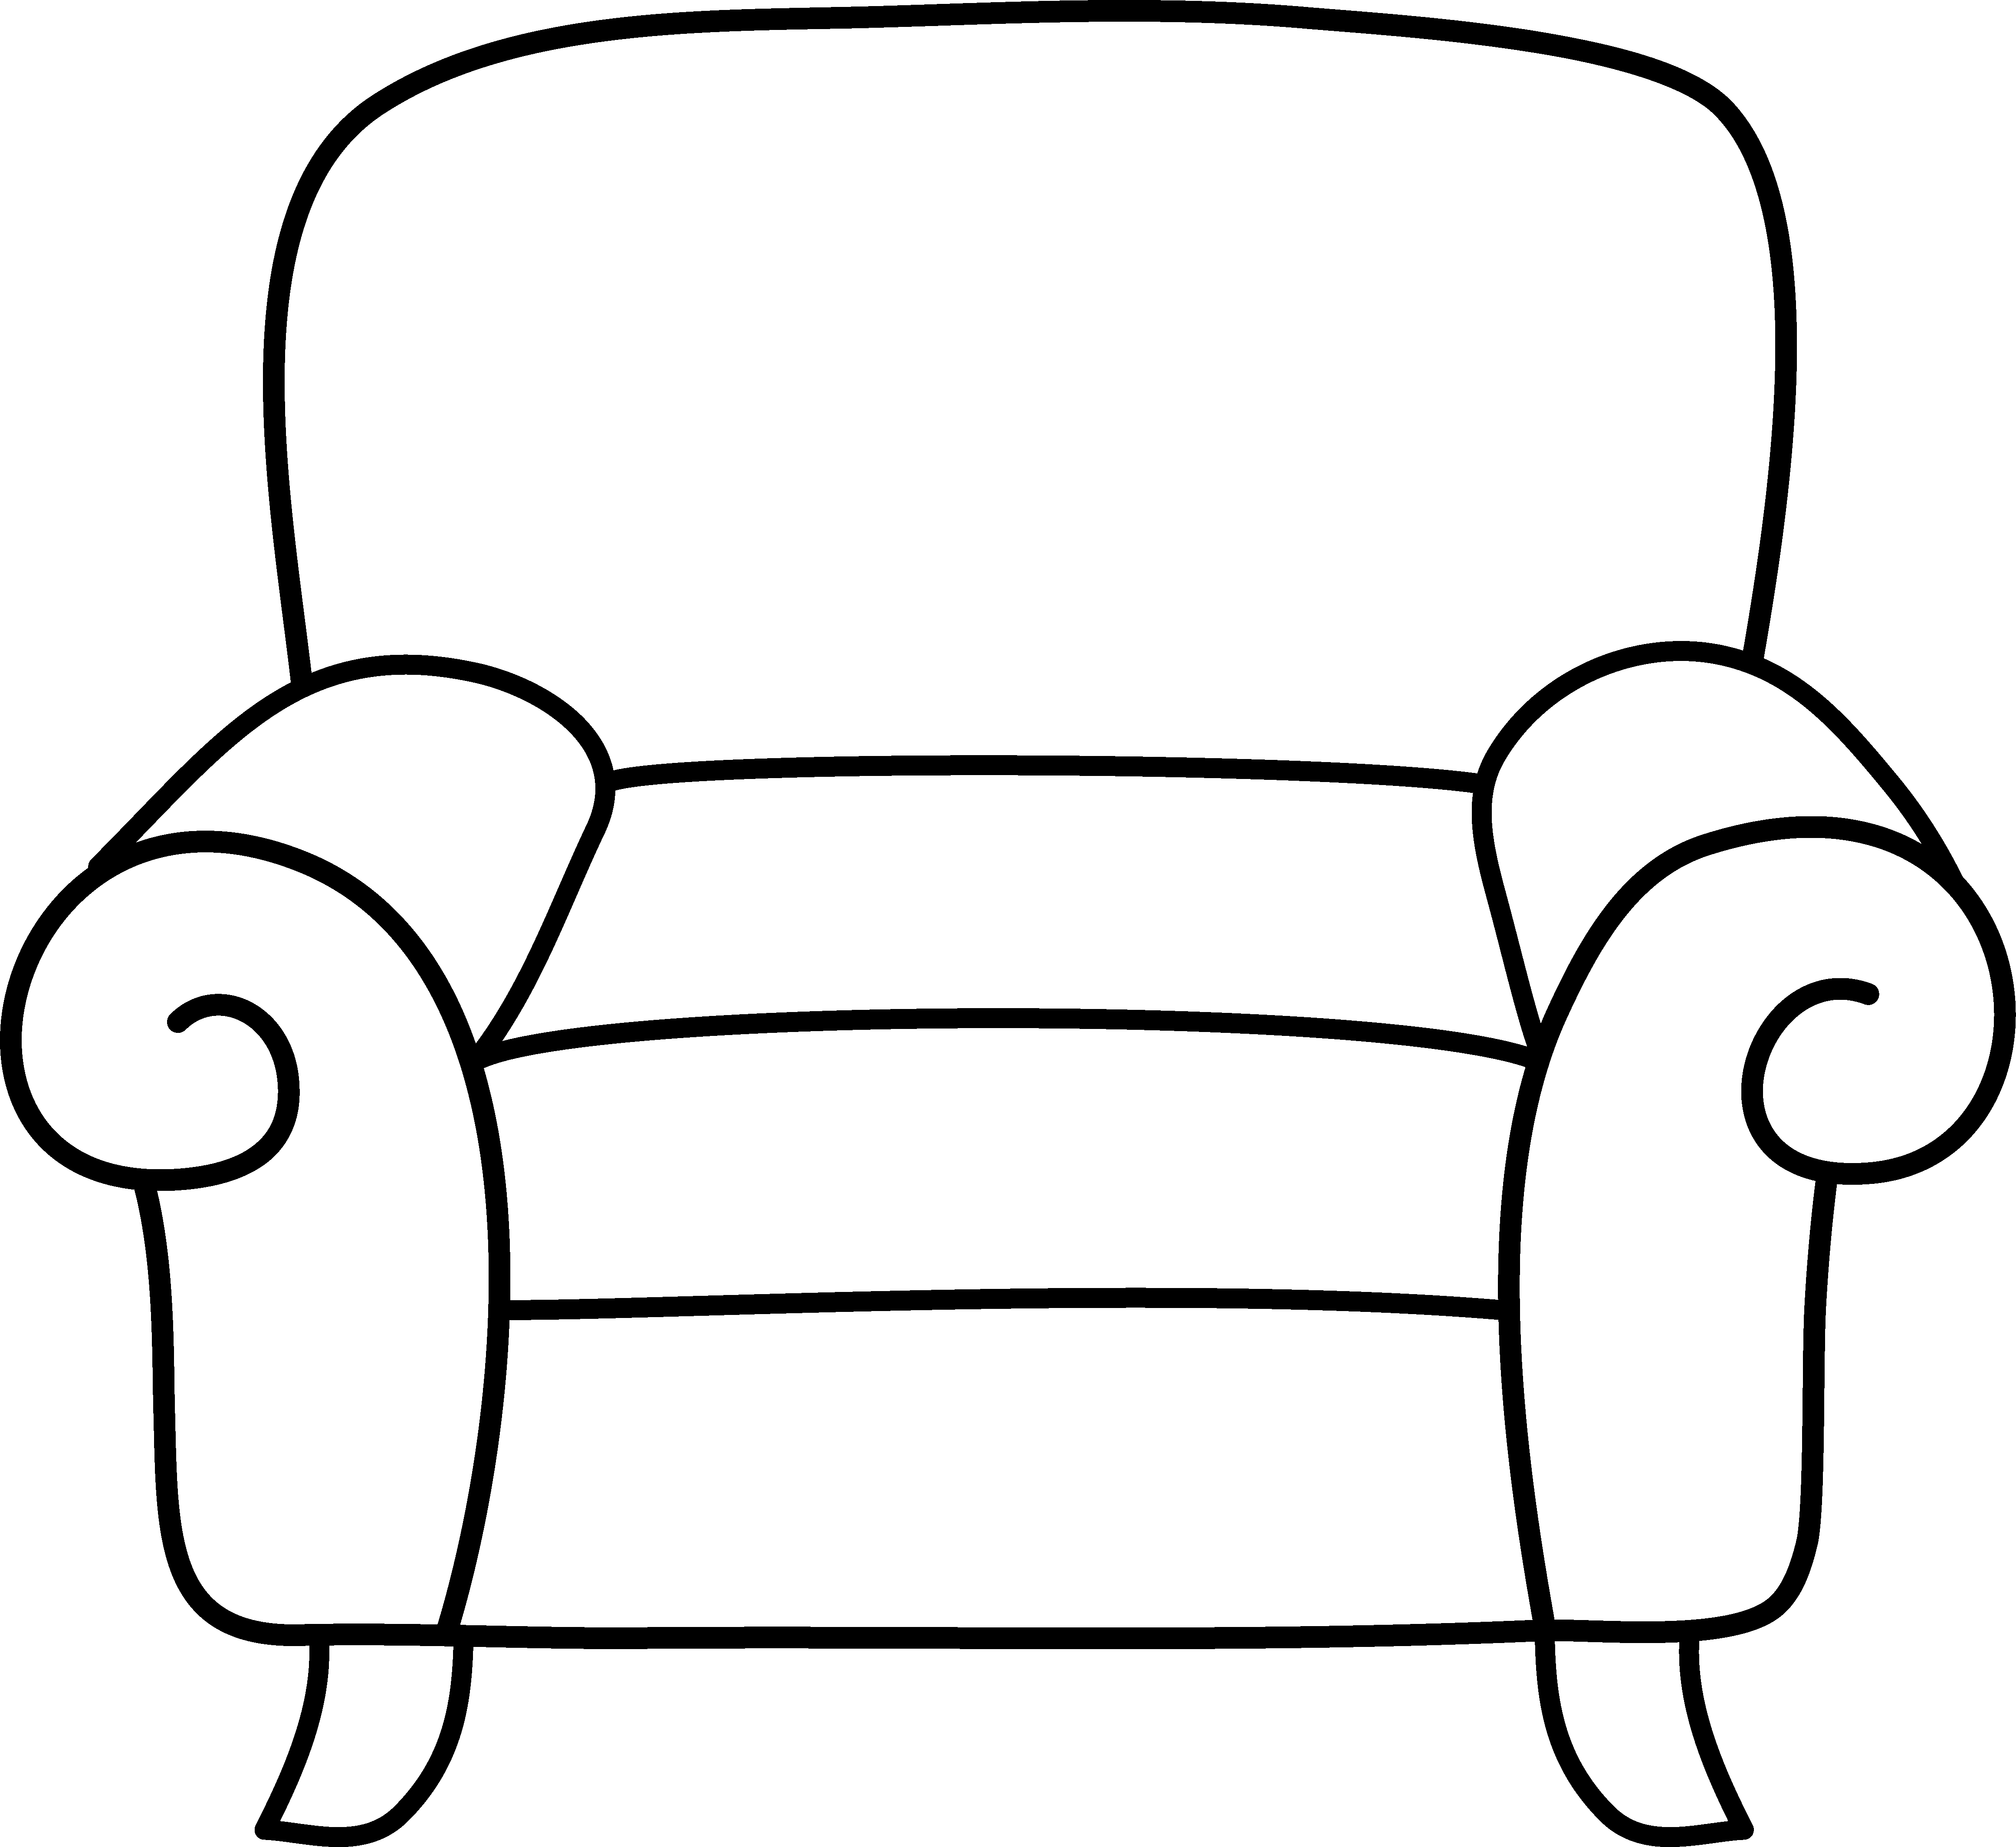 Free Sofa Clipart Black And White, Download Free Clip Art.